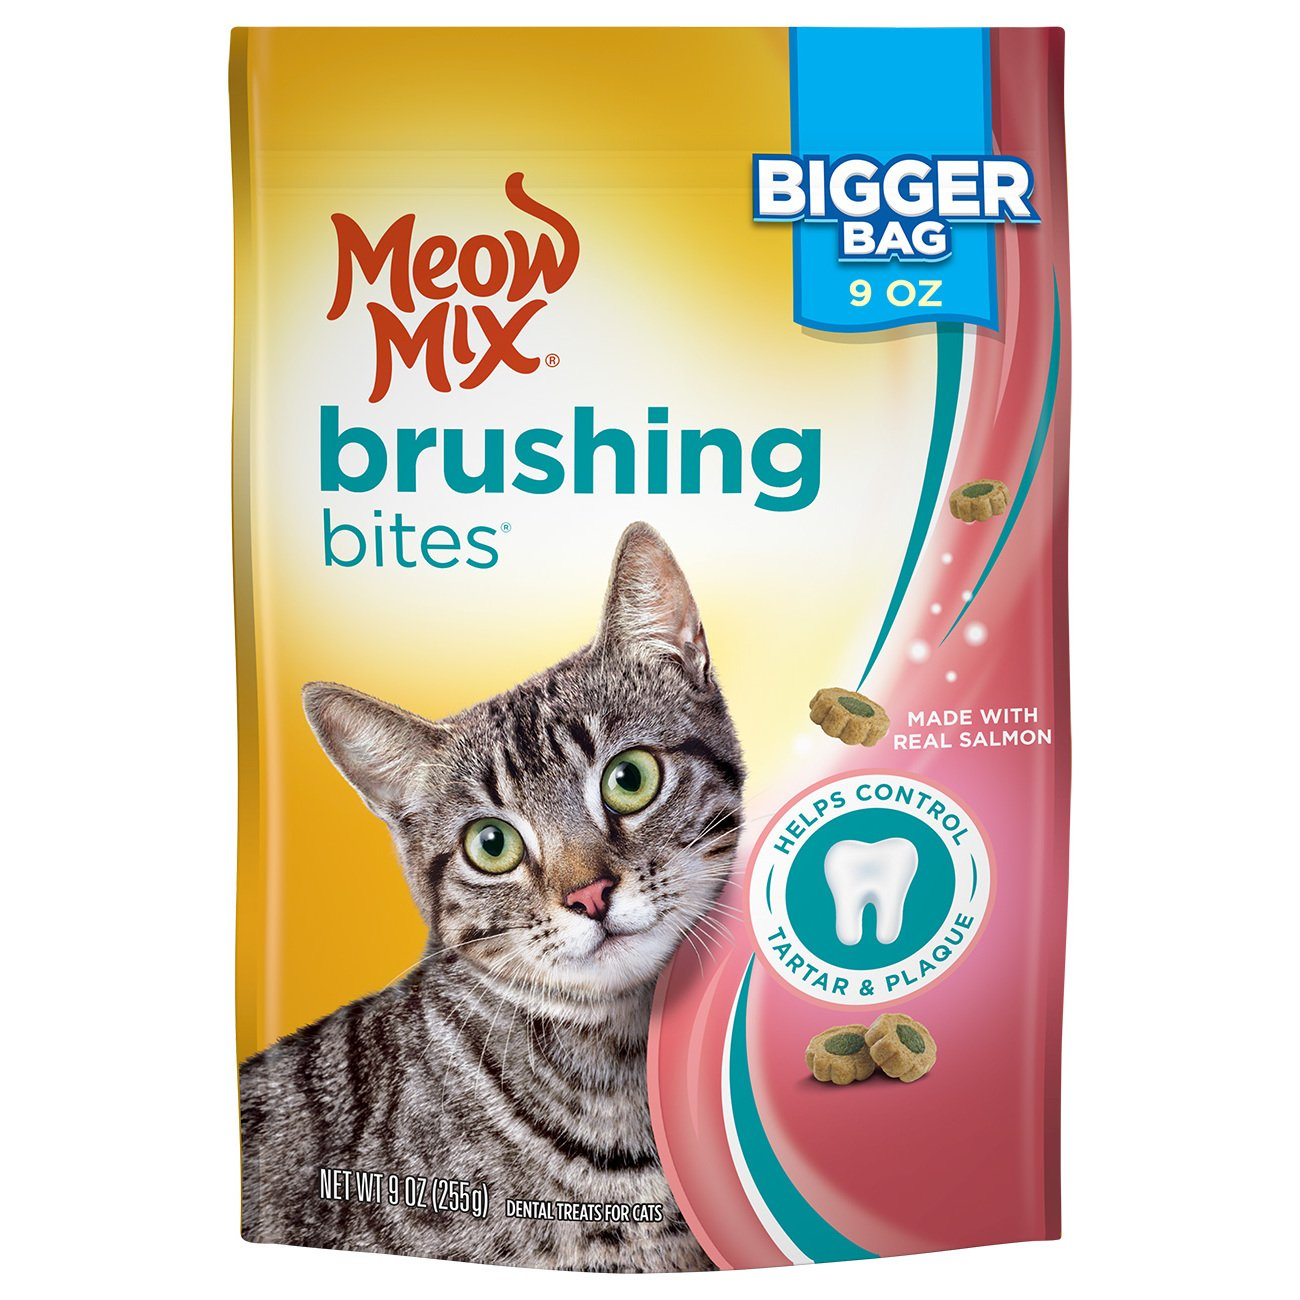 Meow Mix Brushing Bites Dental Cat Treats by Meow Mix